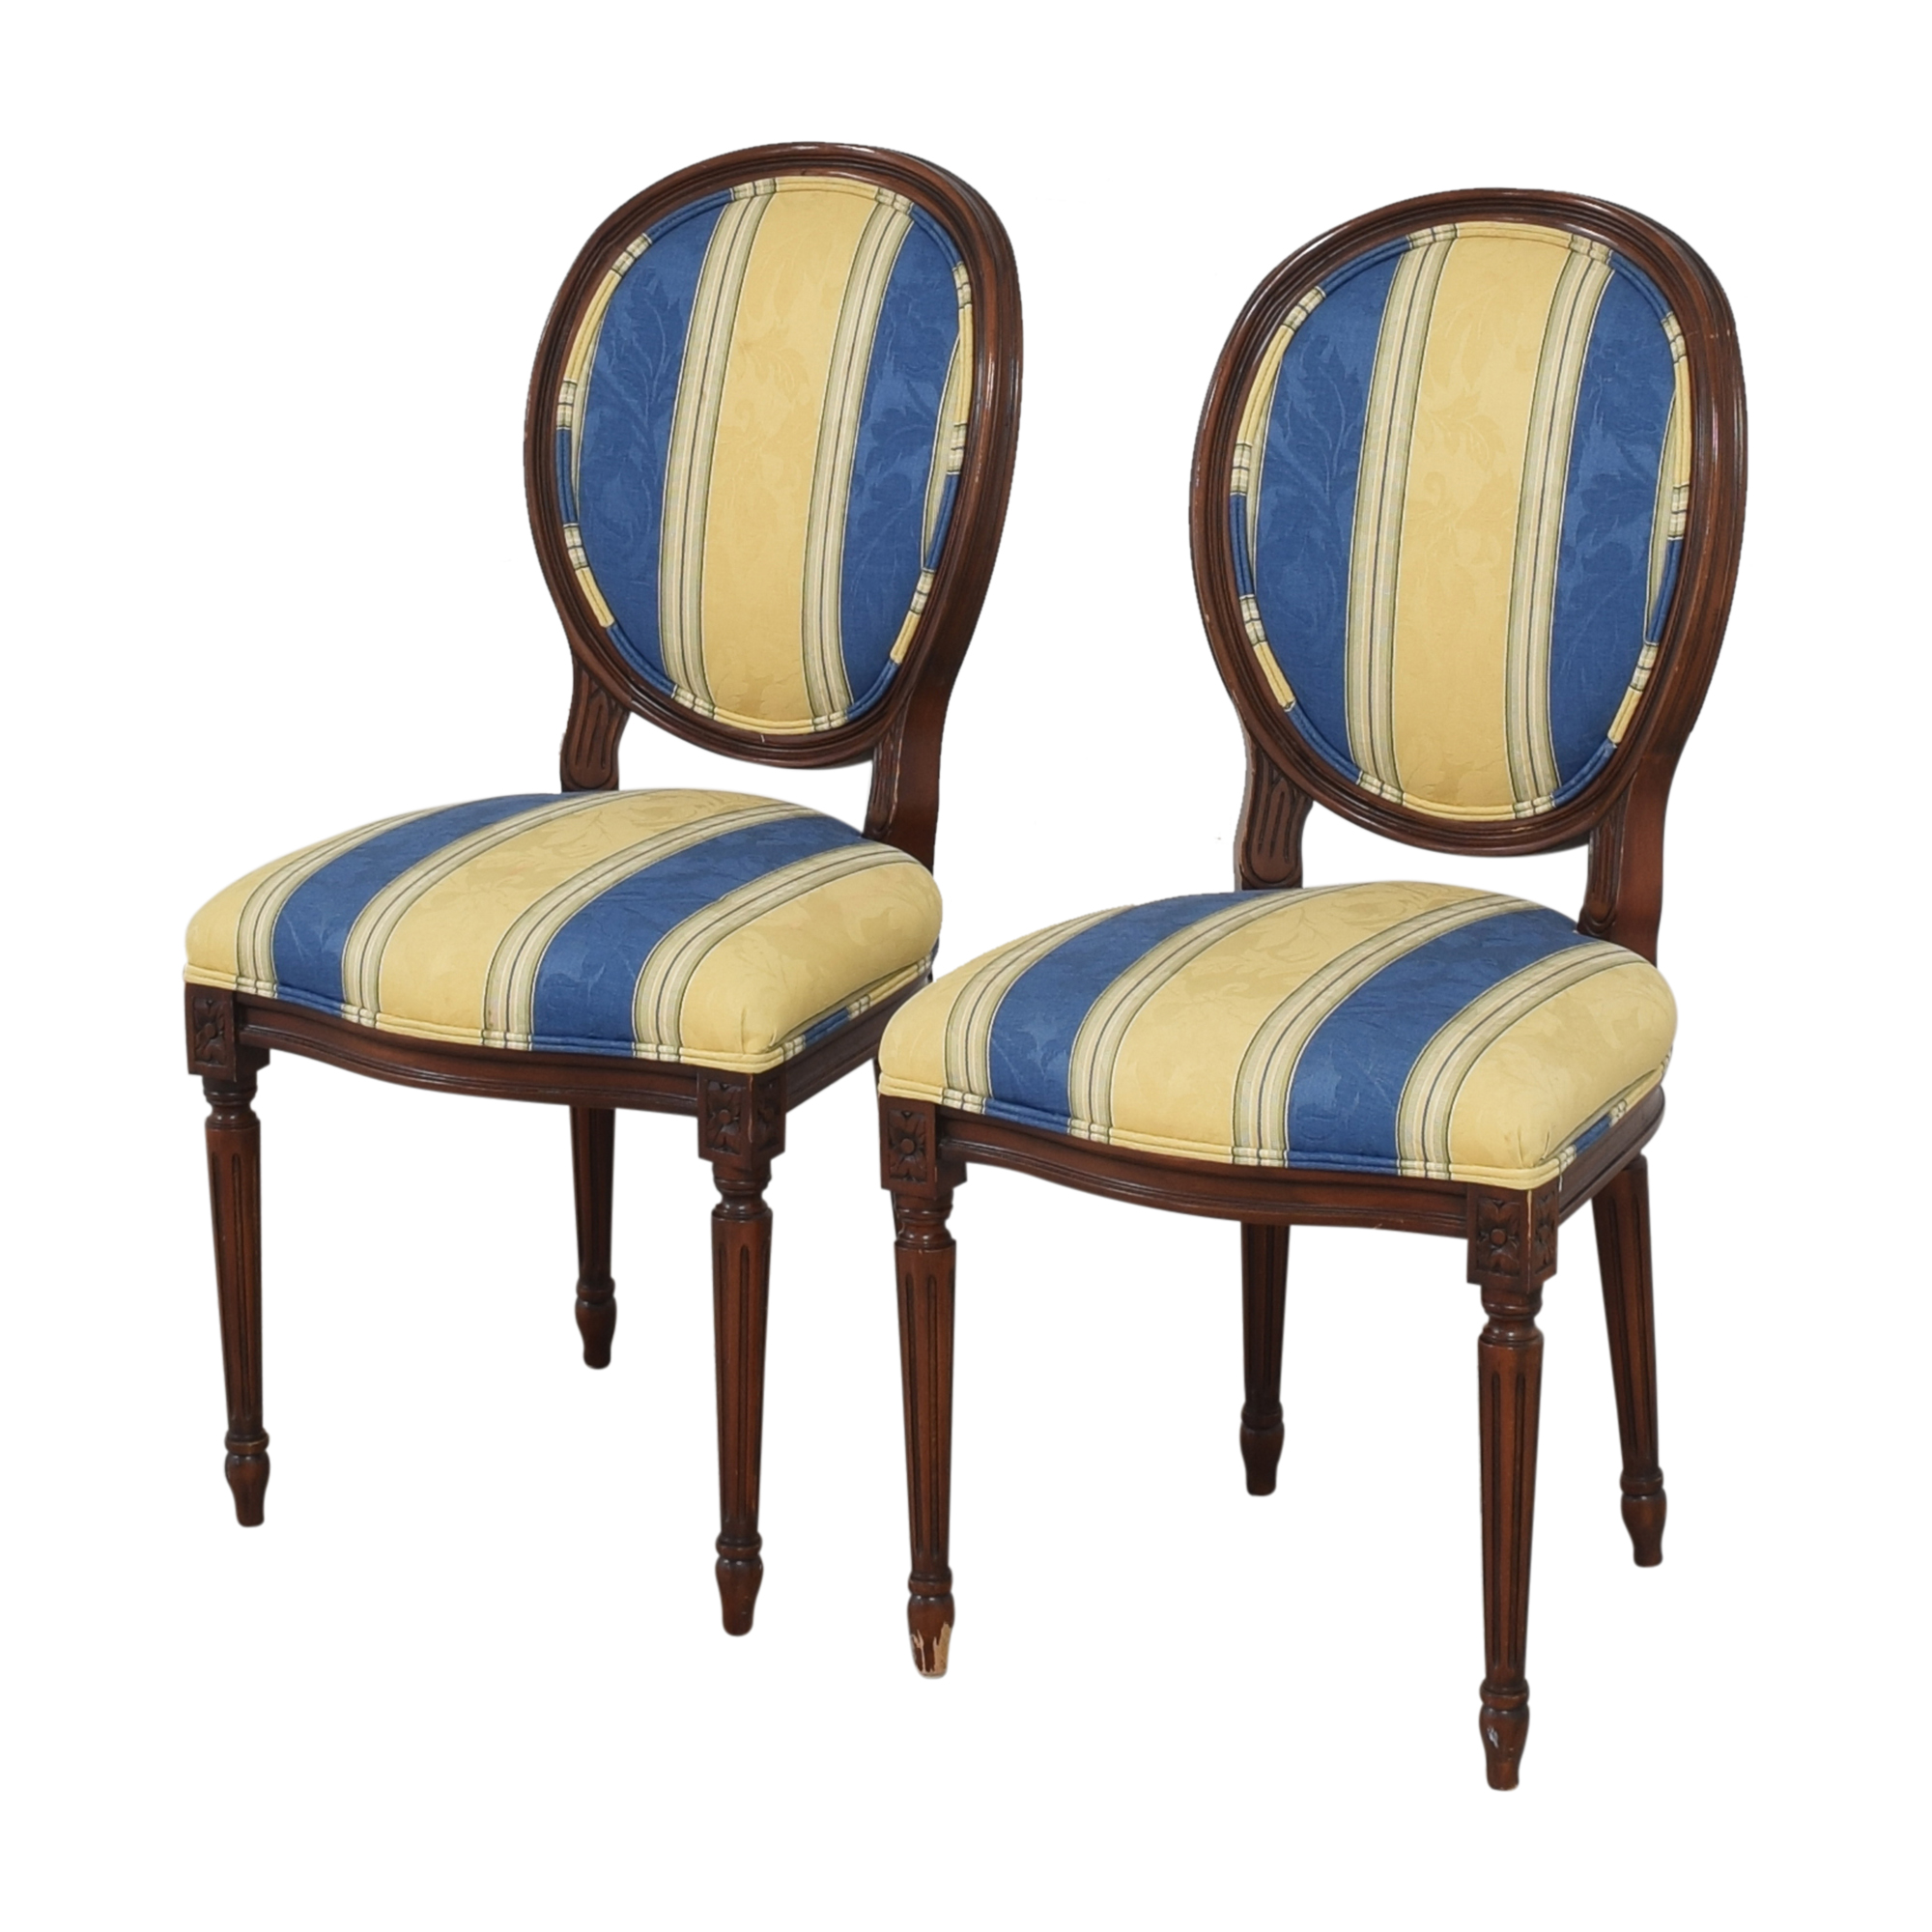 Calico Calico Corners Striped Round Back Dining Side Chairs for sale